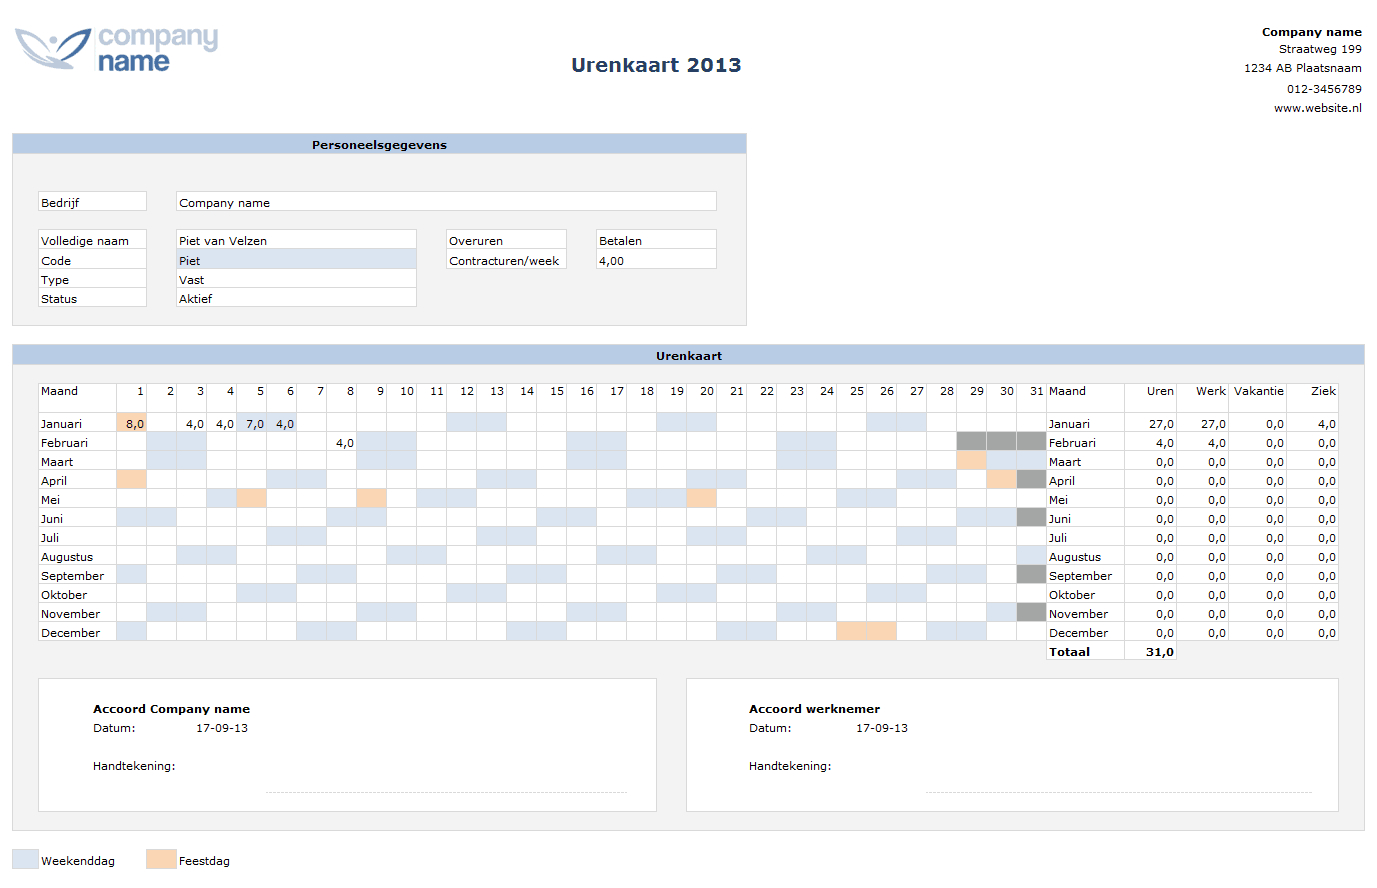 Google Spreadsheet Urenregistratie Intended For Urenregistratie Personeel In Horeca Of Winkels